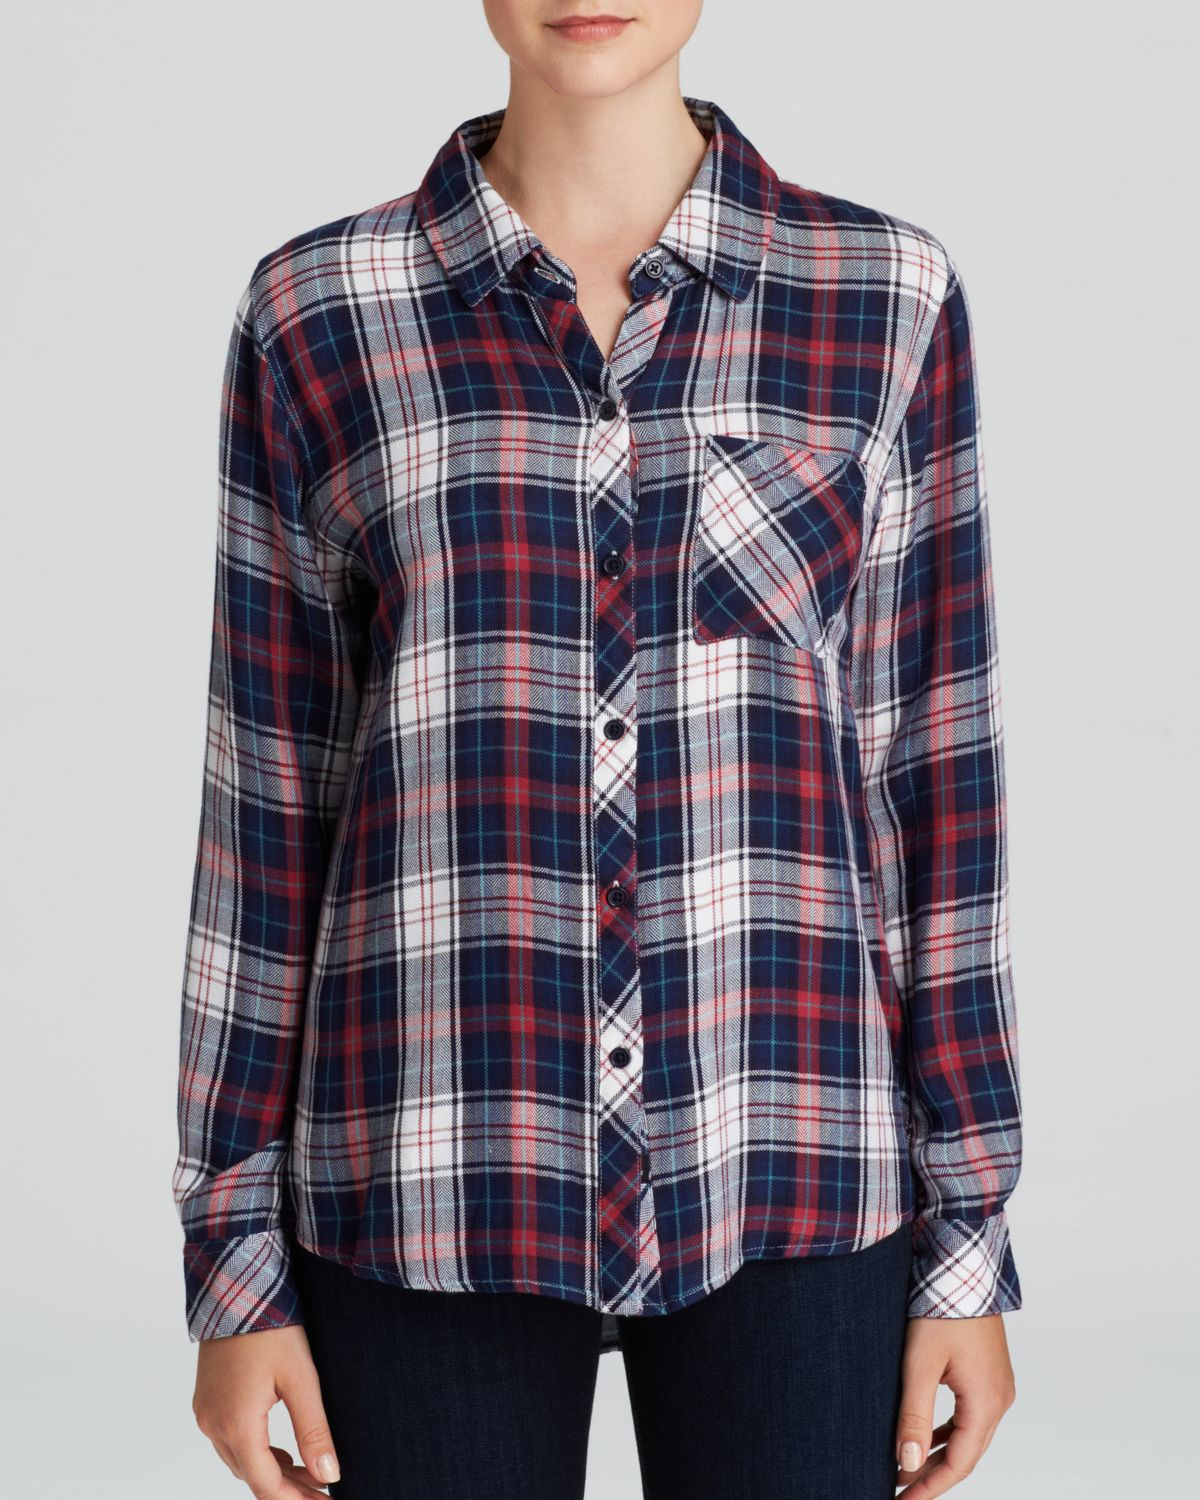 rails hunter plaid button down shirt in blue rouge navy. Black Bedroom Furniture Sets. Home Design Ideas